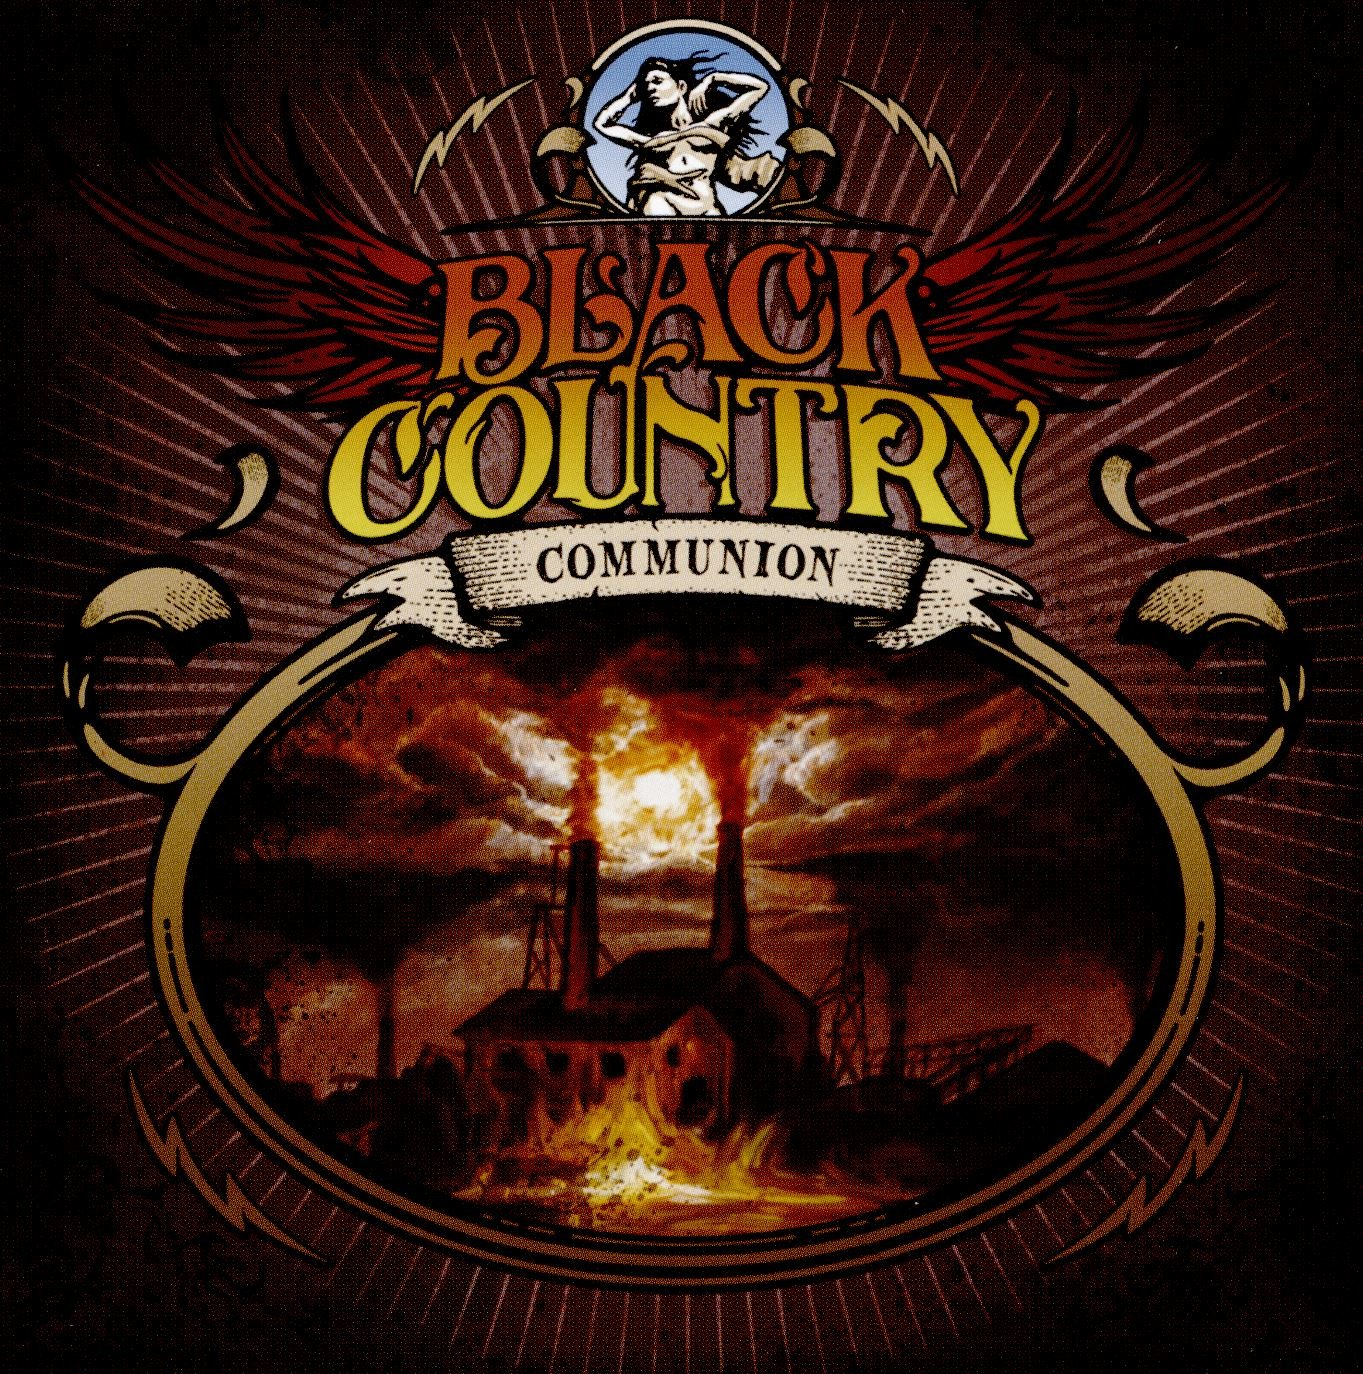 d7e2eadcd61c16 Black Country Communion: Amazon.co.uk: Music